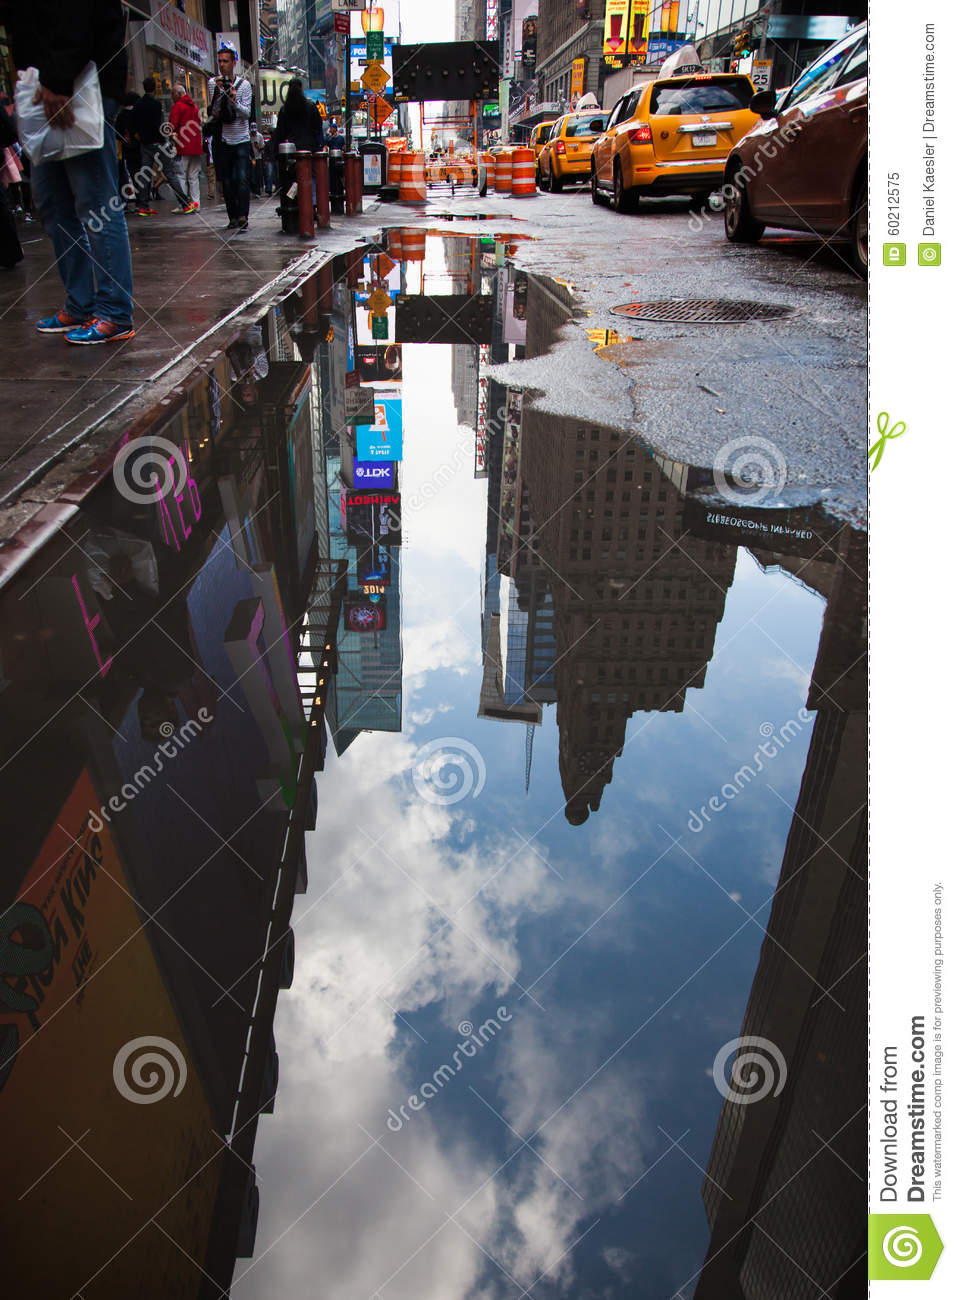 Bad Weather In New York Editorial Image. Image Of United